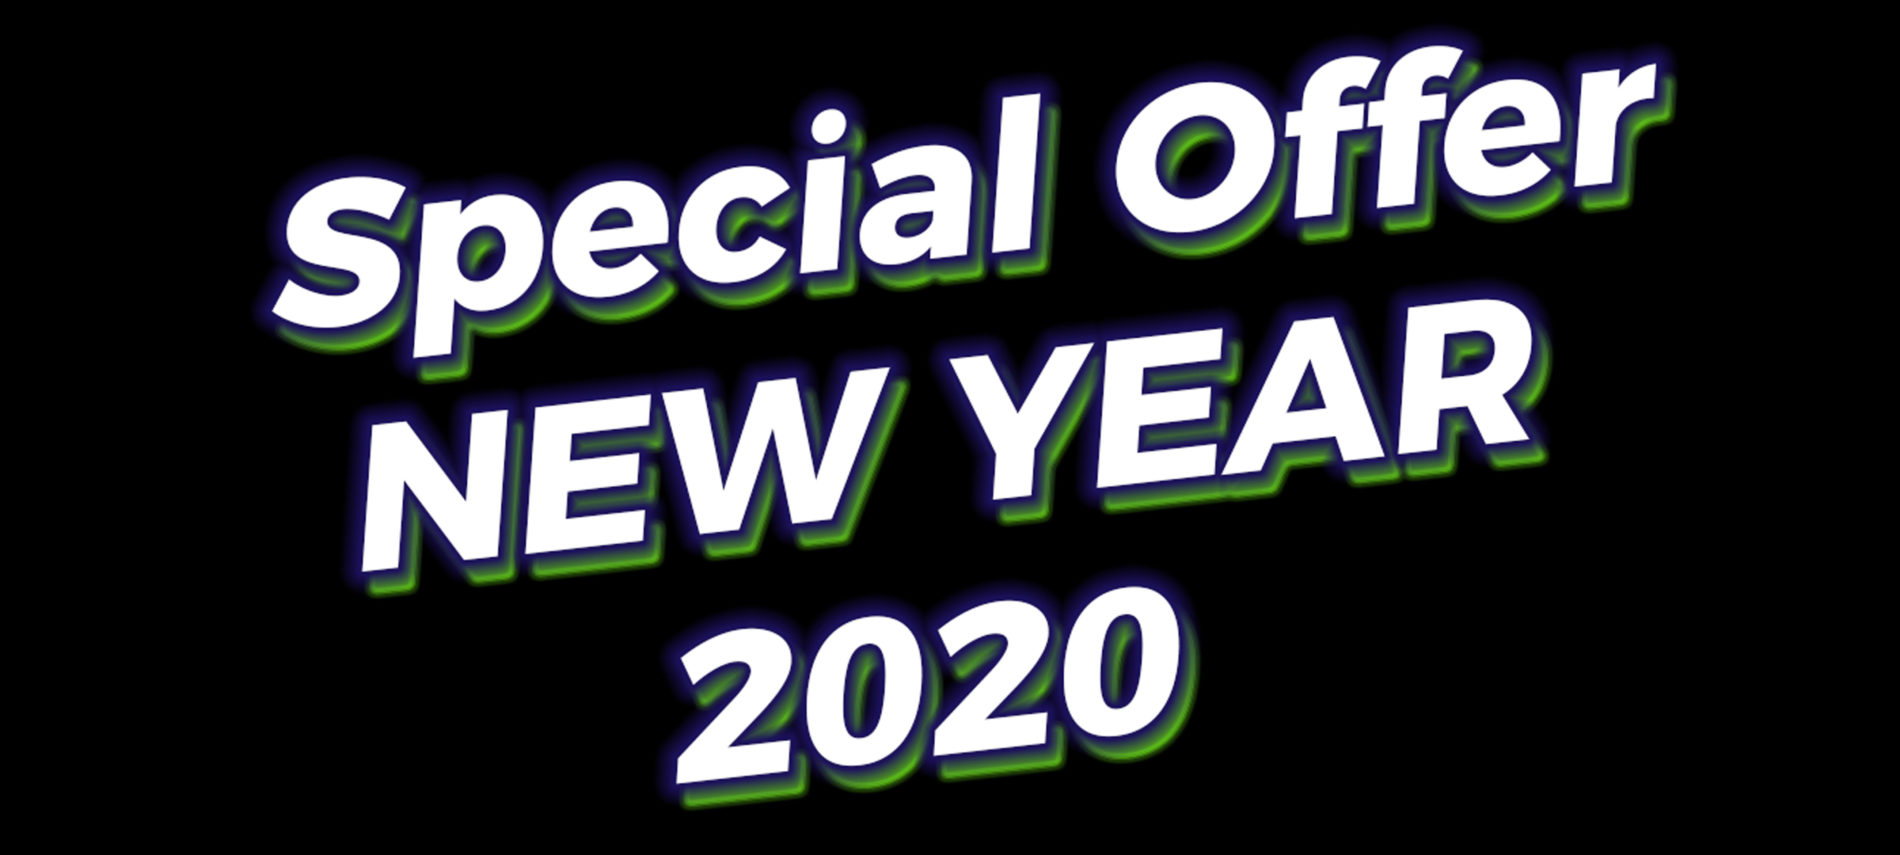 Special Offer New Year 2020